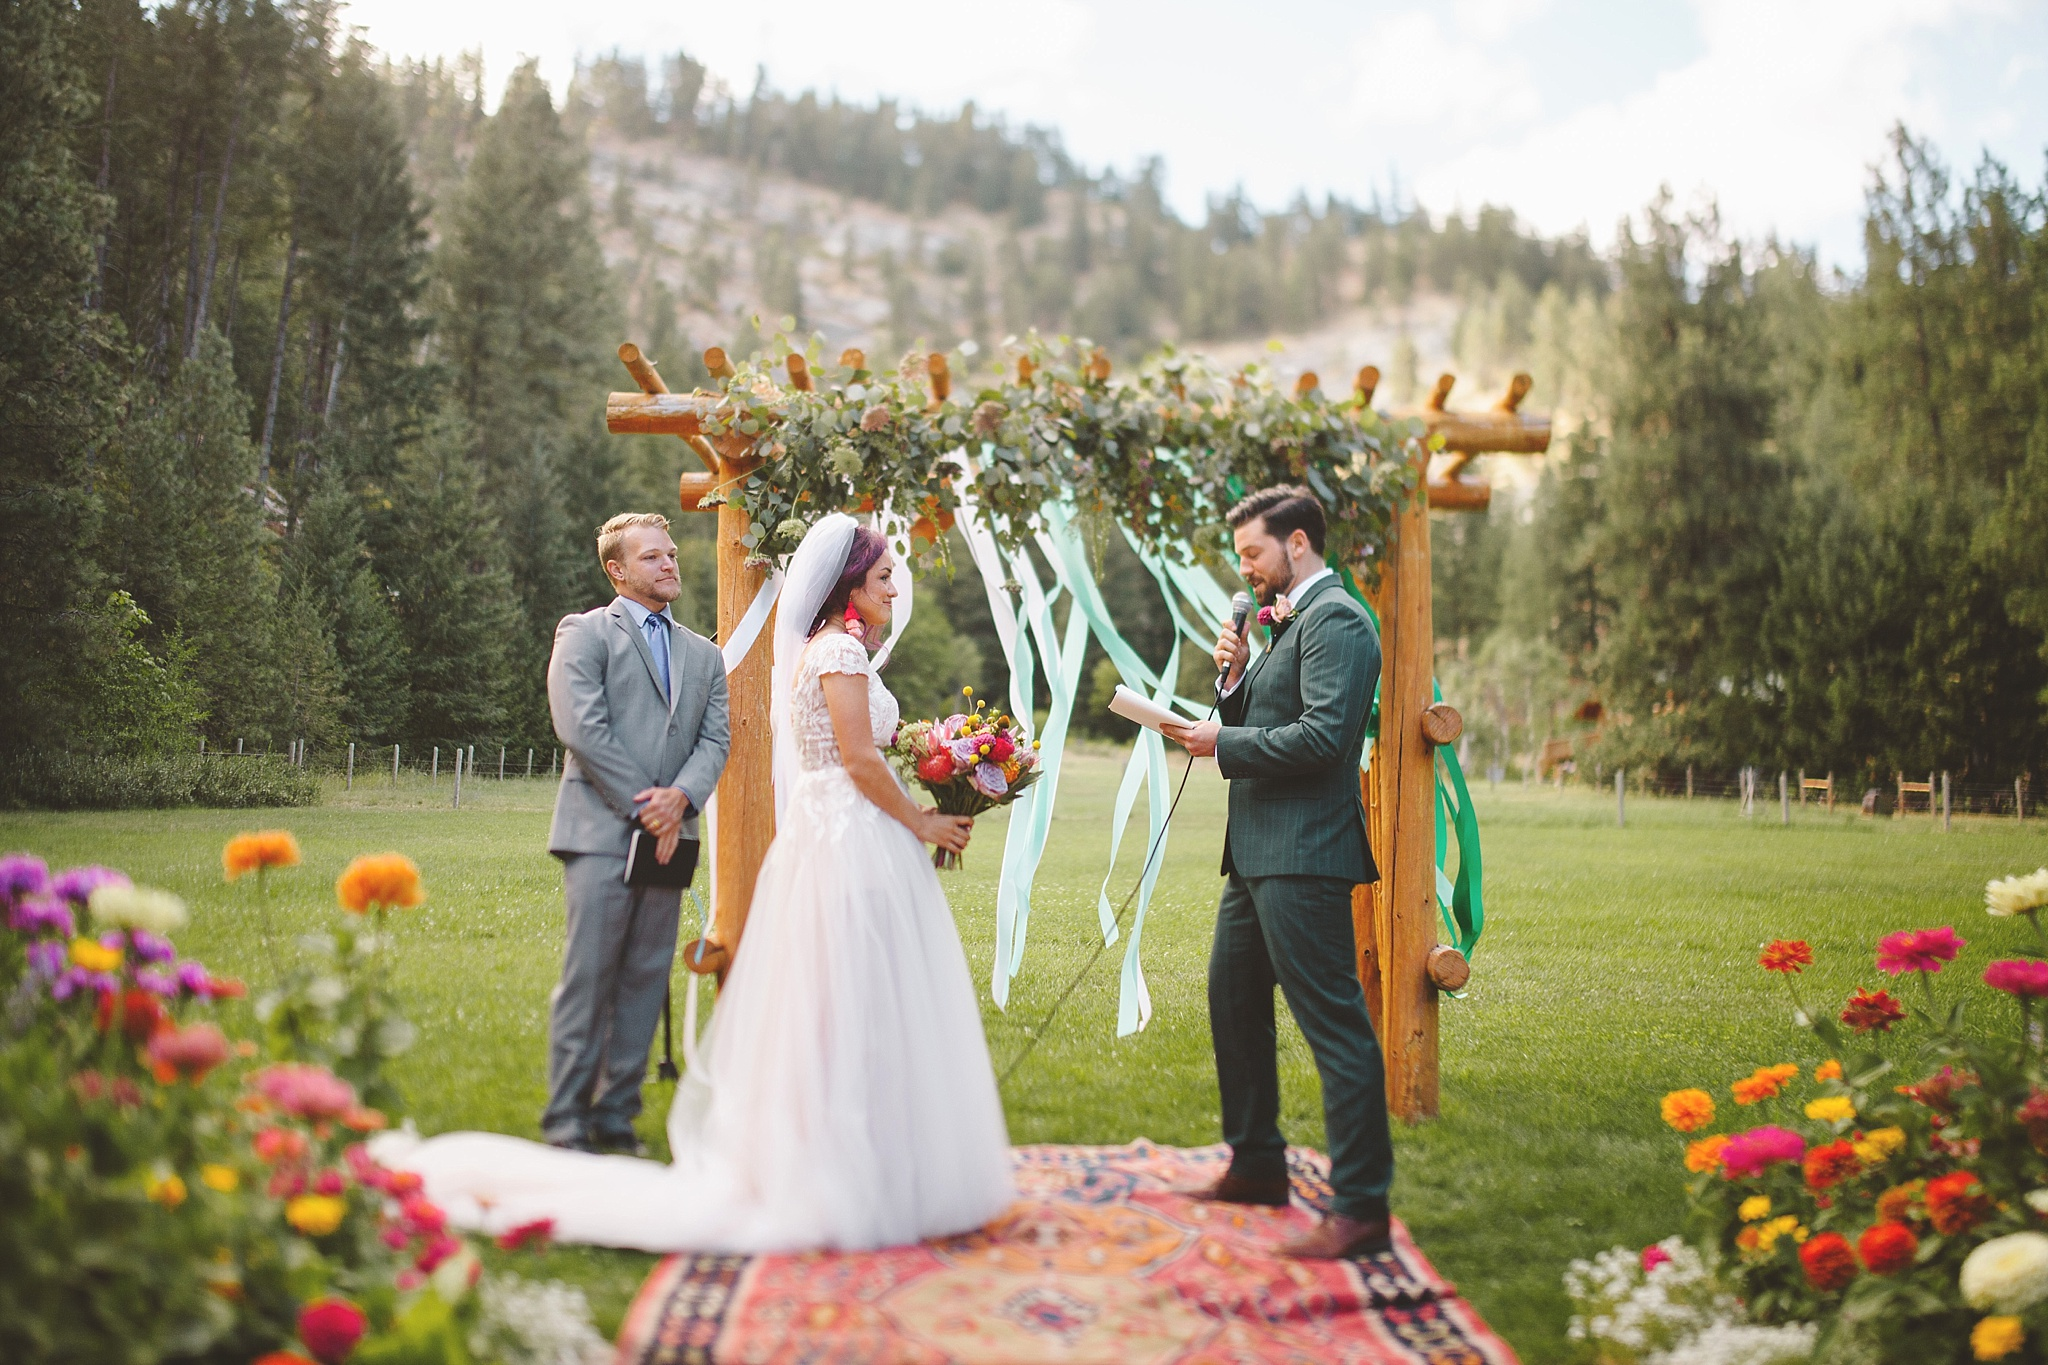 bohemian wedding ceremony in seattle